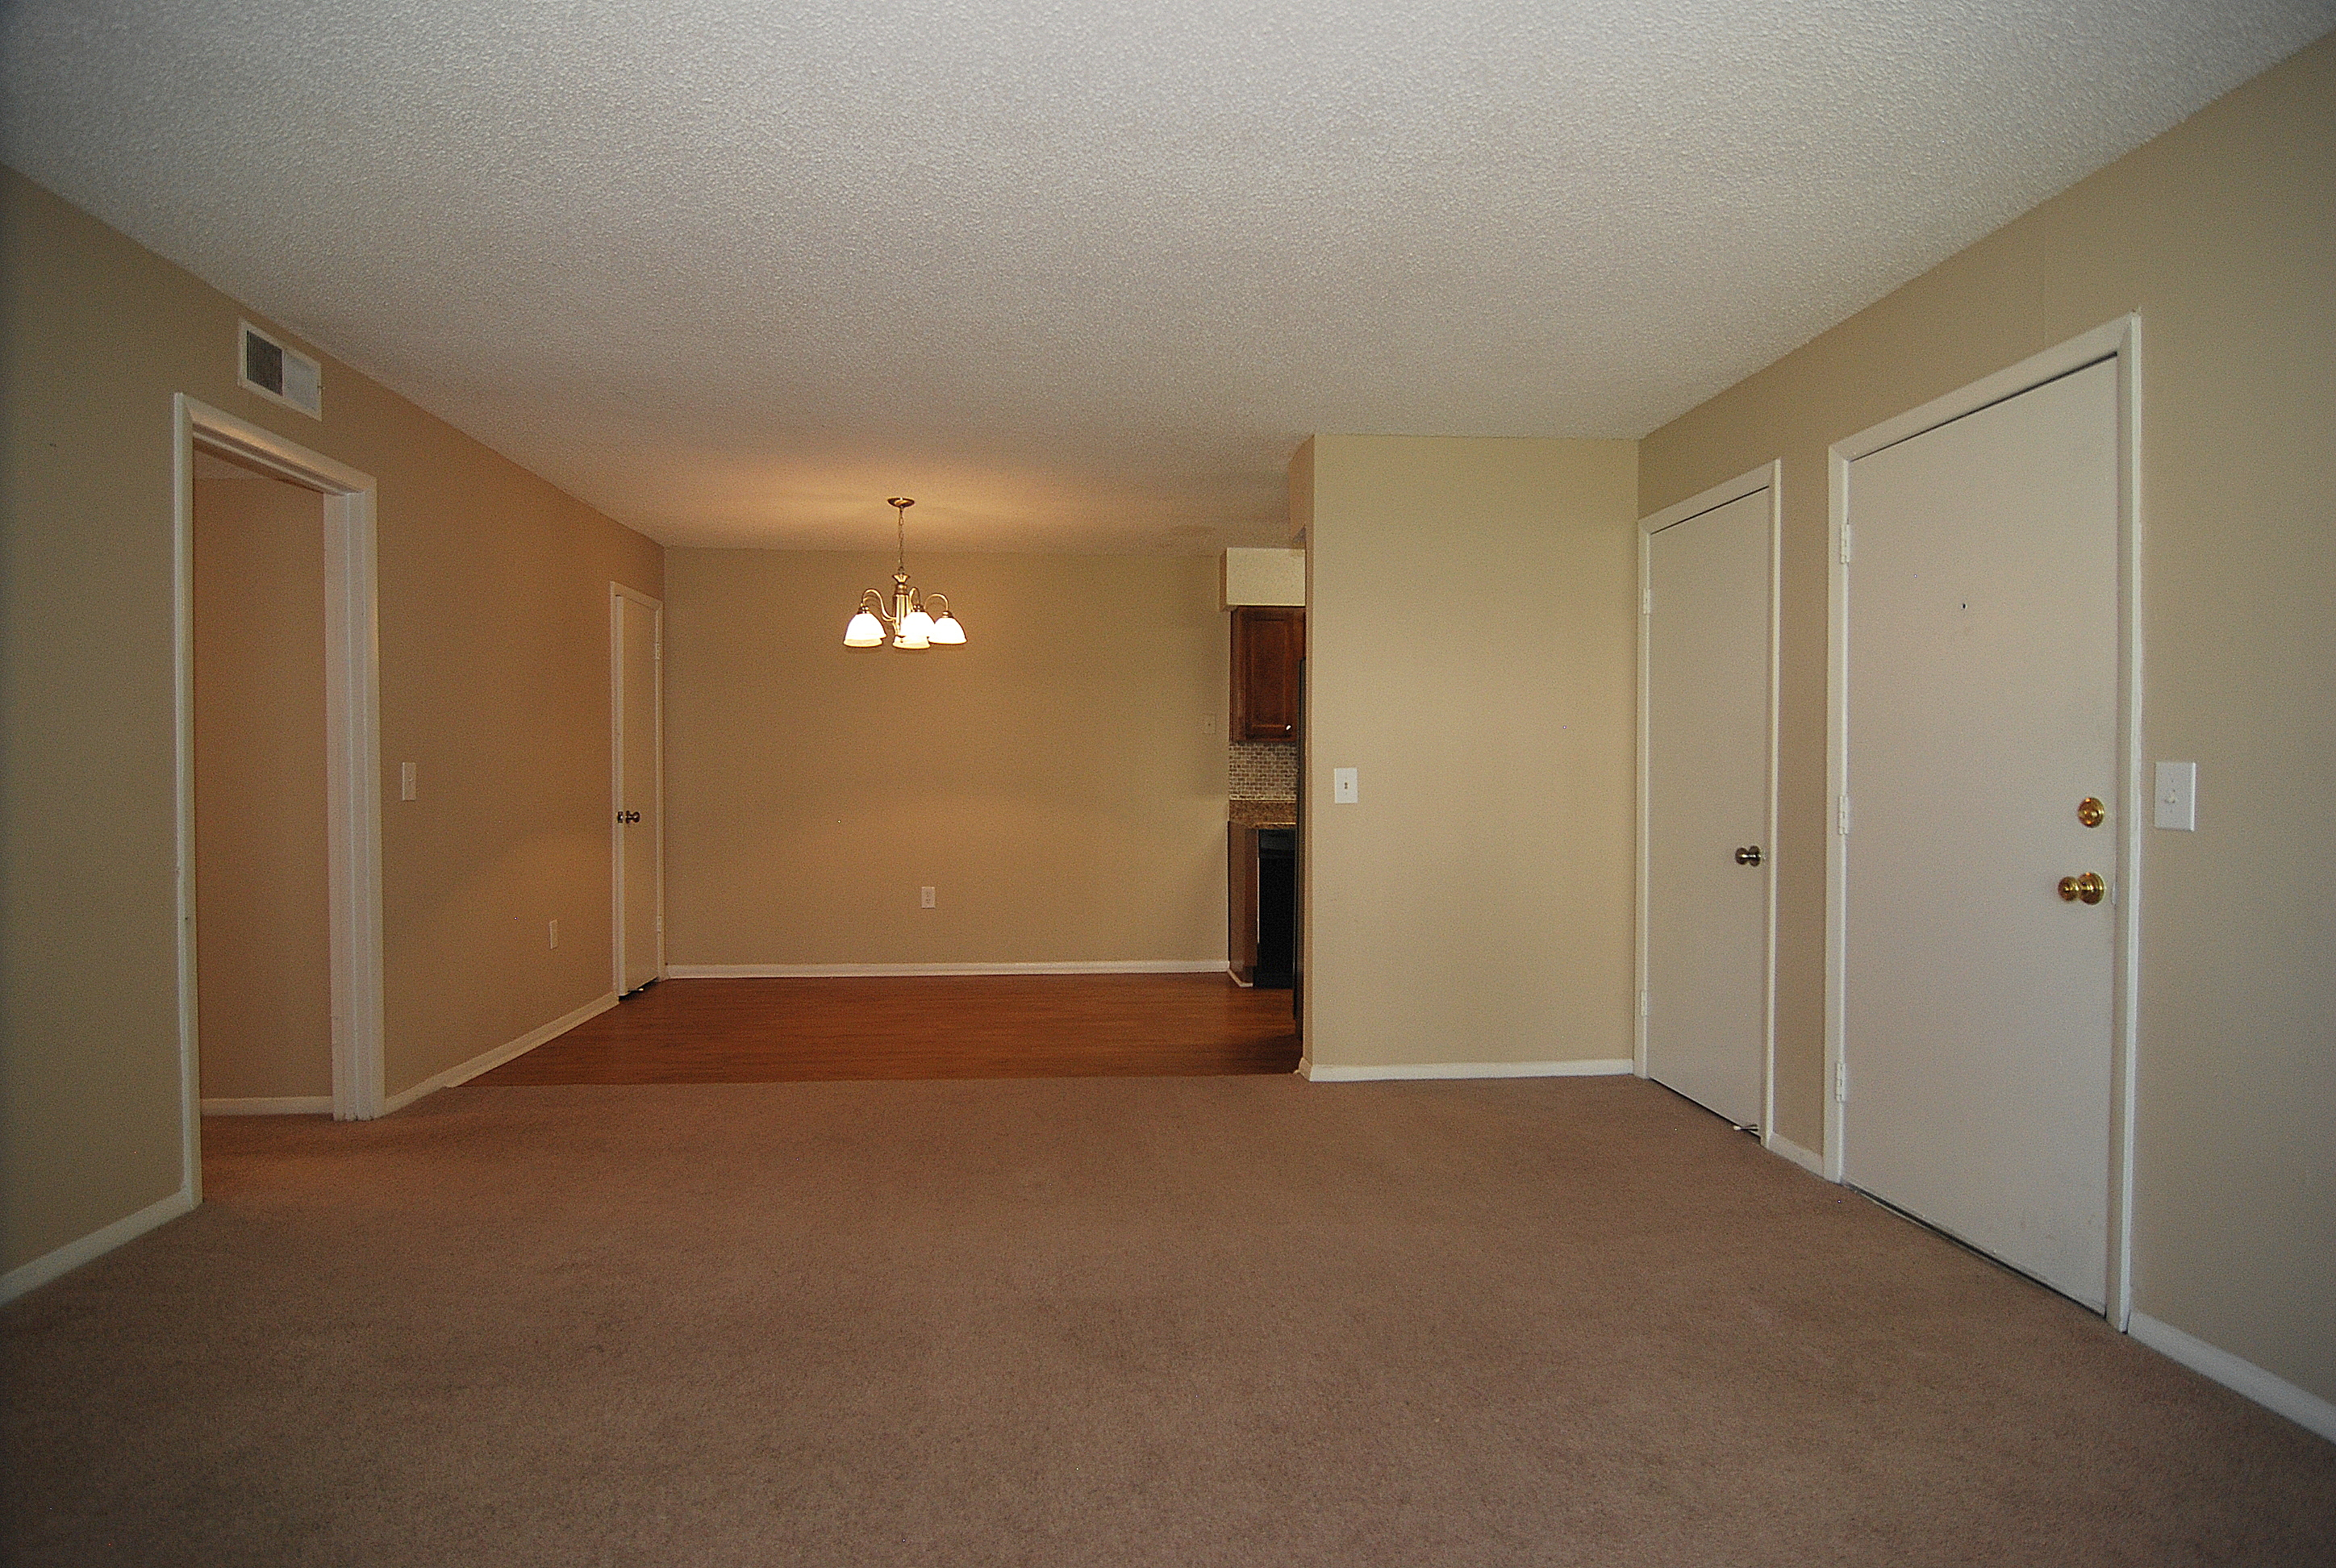 Carriage Place - Typical 2 BR 2 BA Living and Dining Rooms